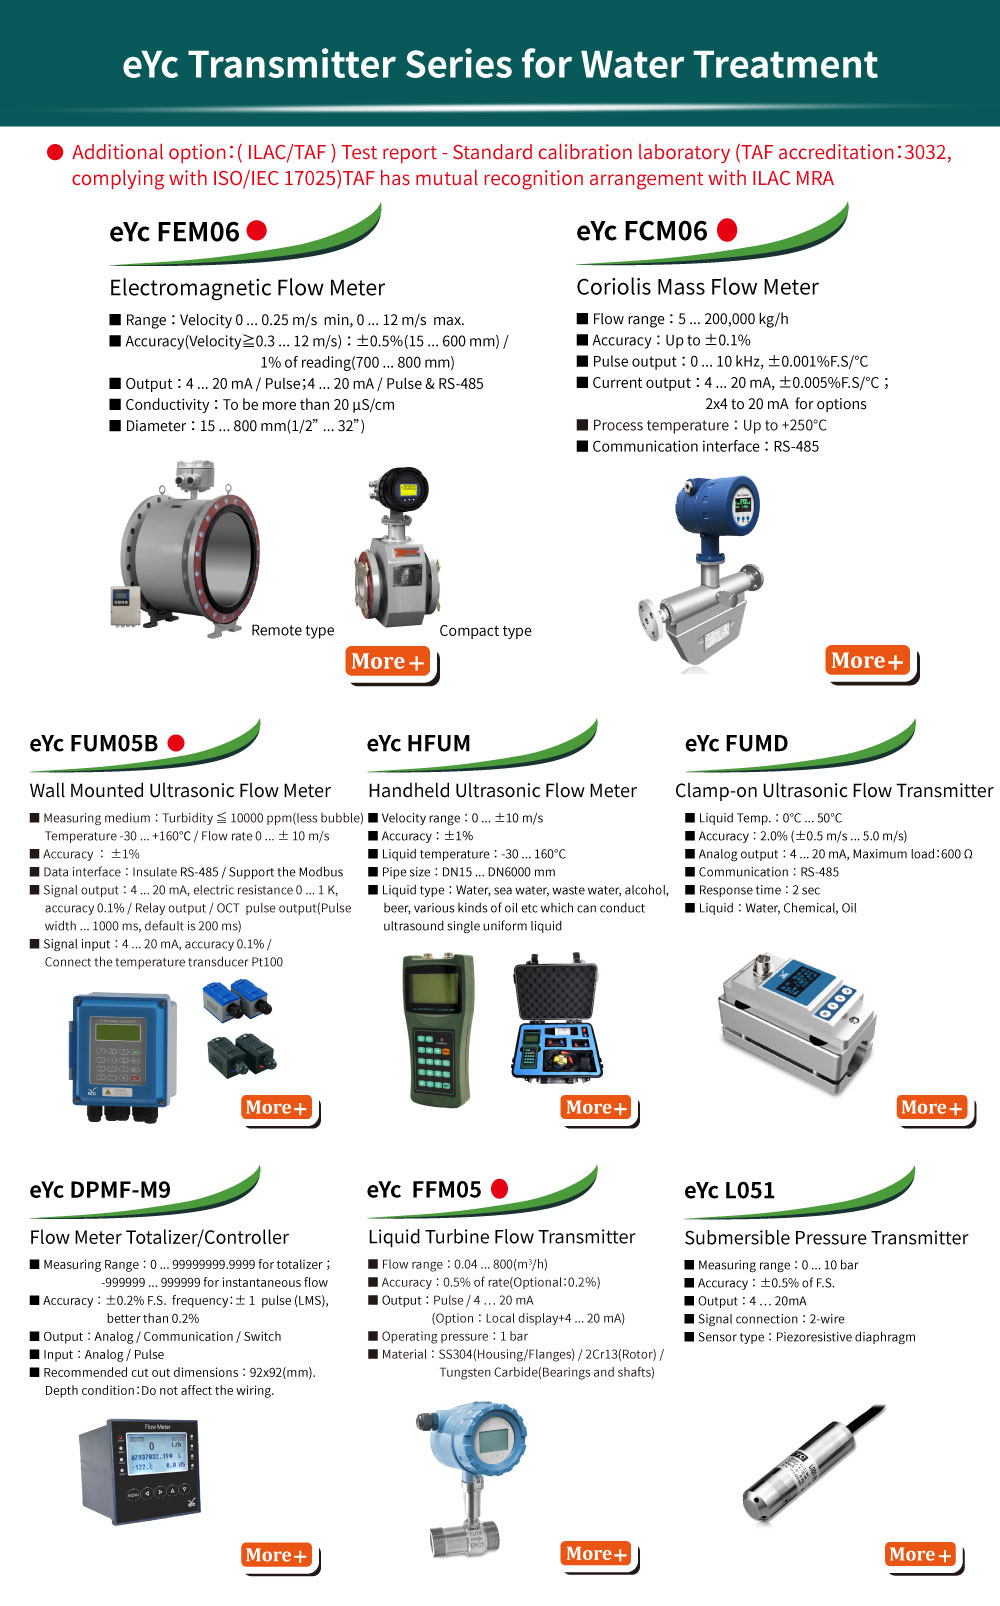 eYc Transmitter Series for Water Treatment